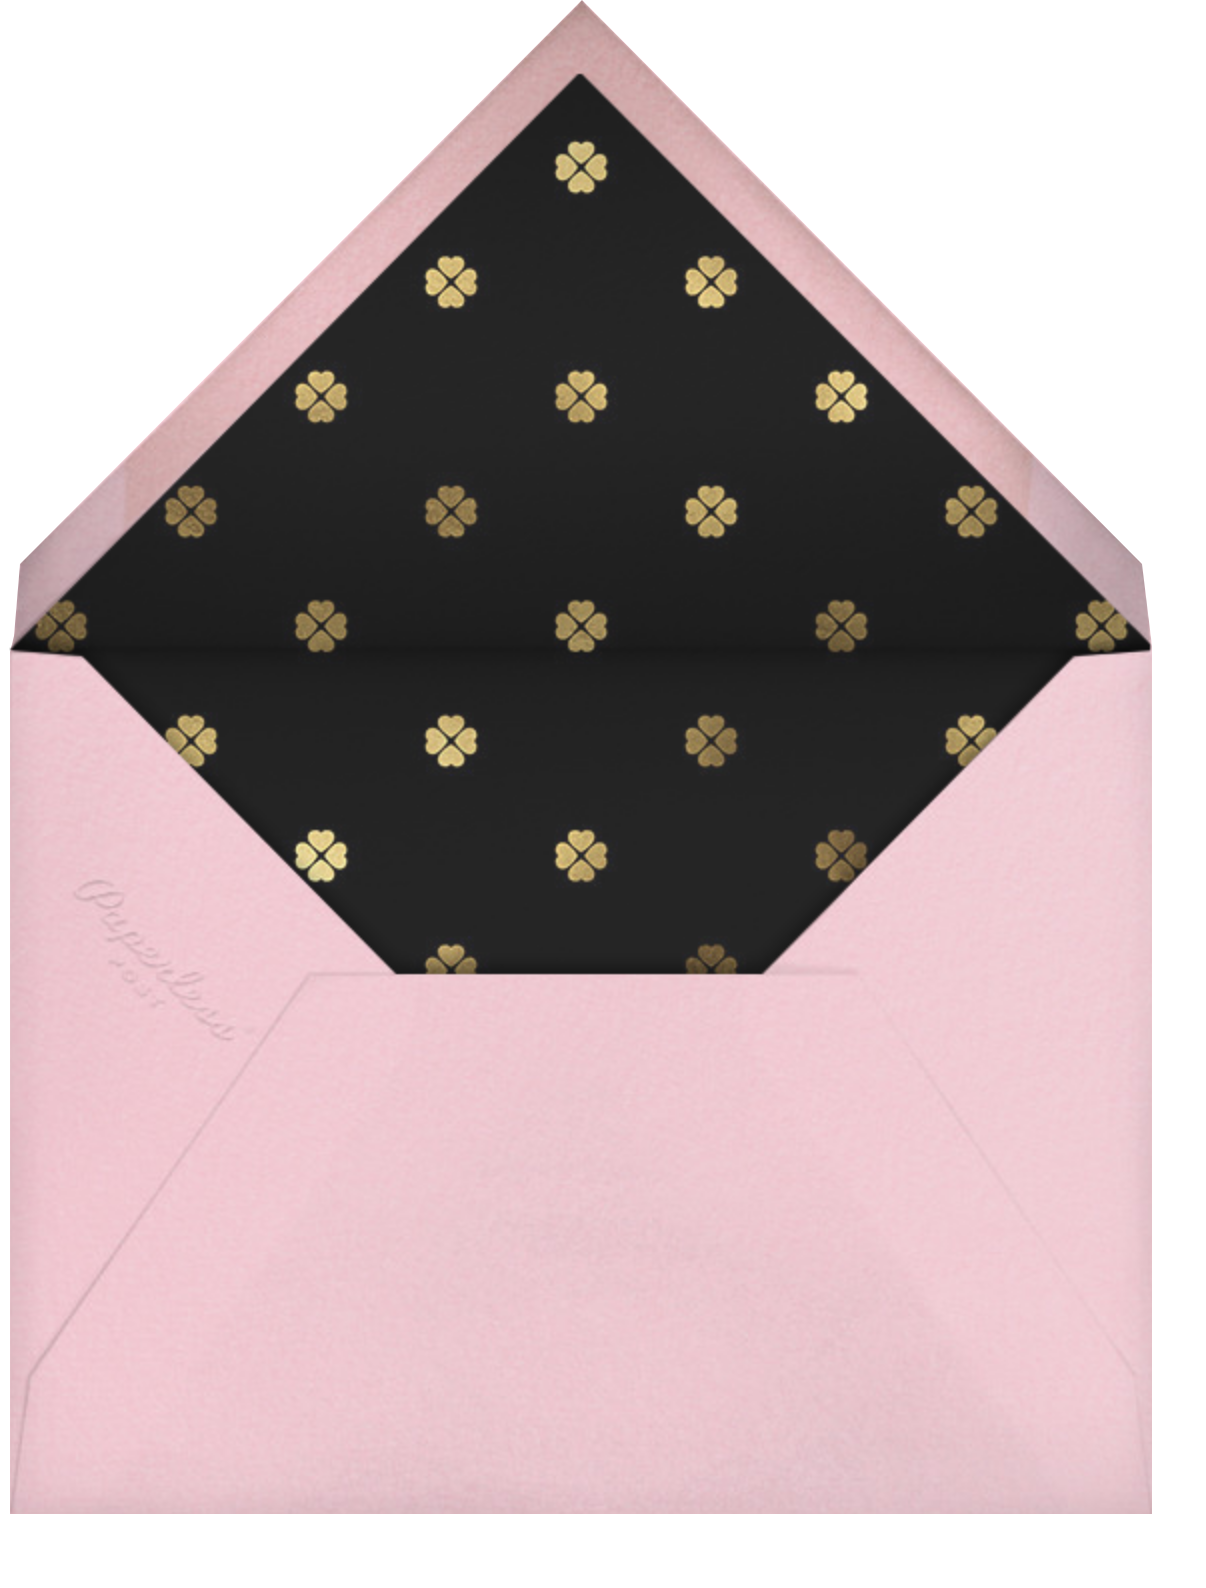 Daisy Field - Mauve - kate spade new york - General entertaining - envelope back